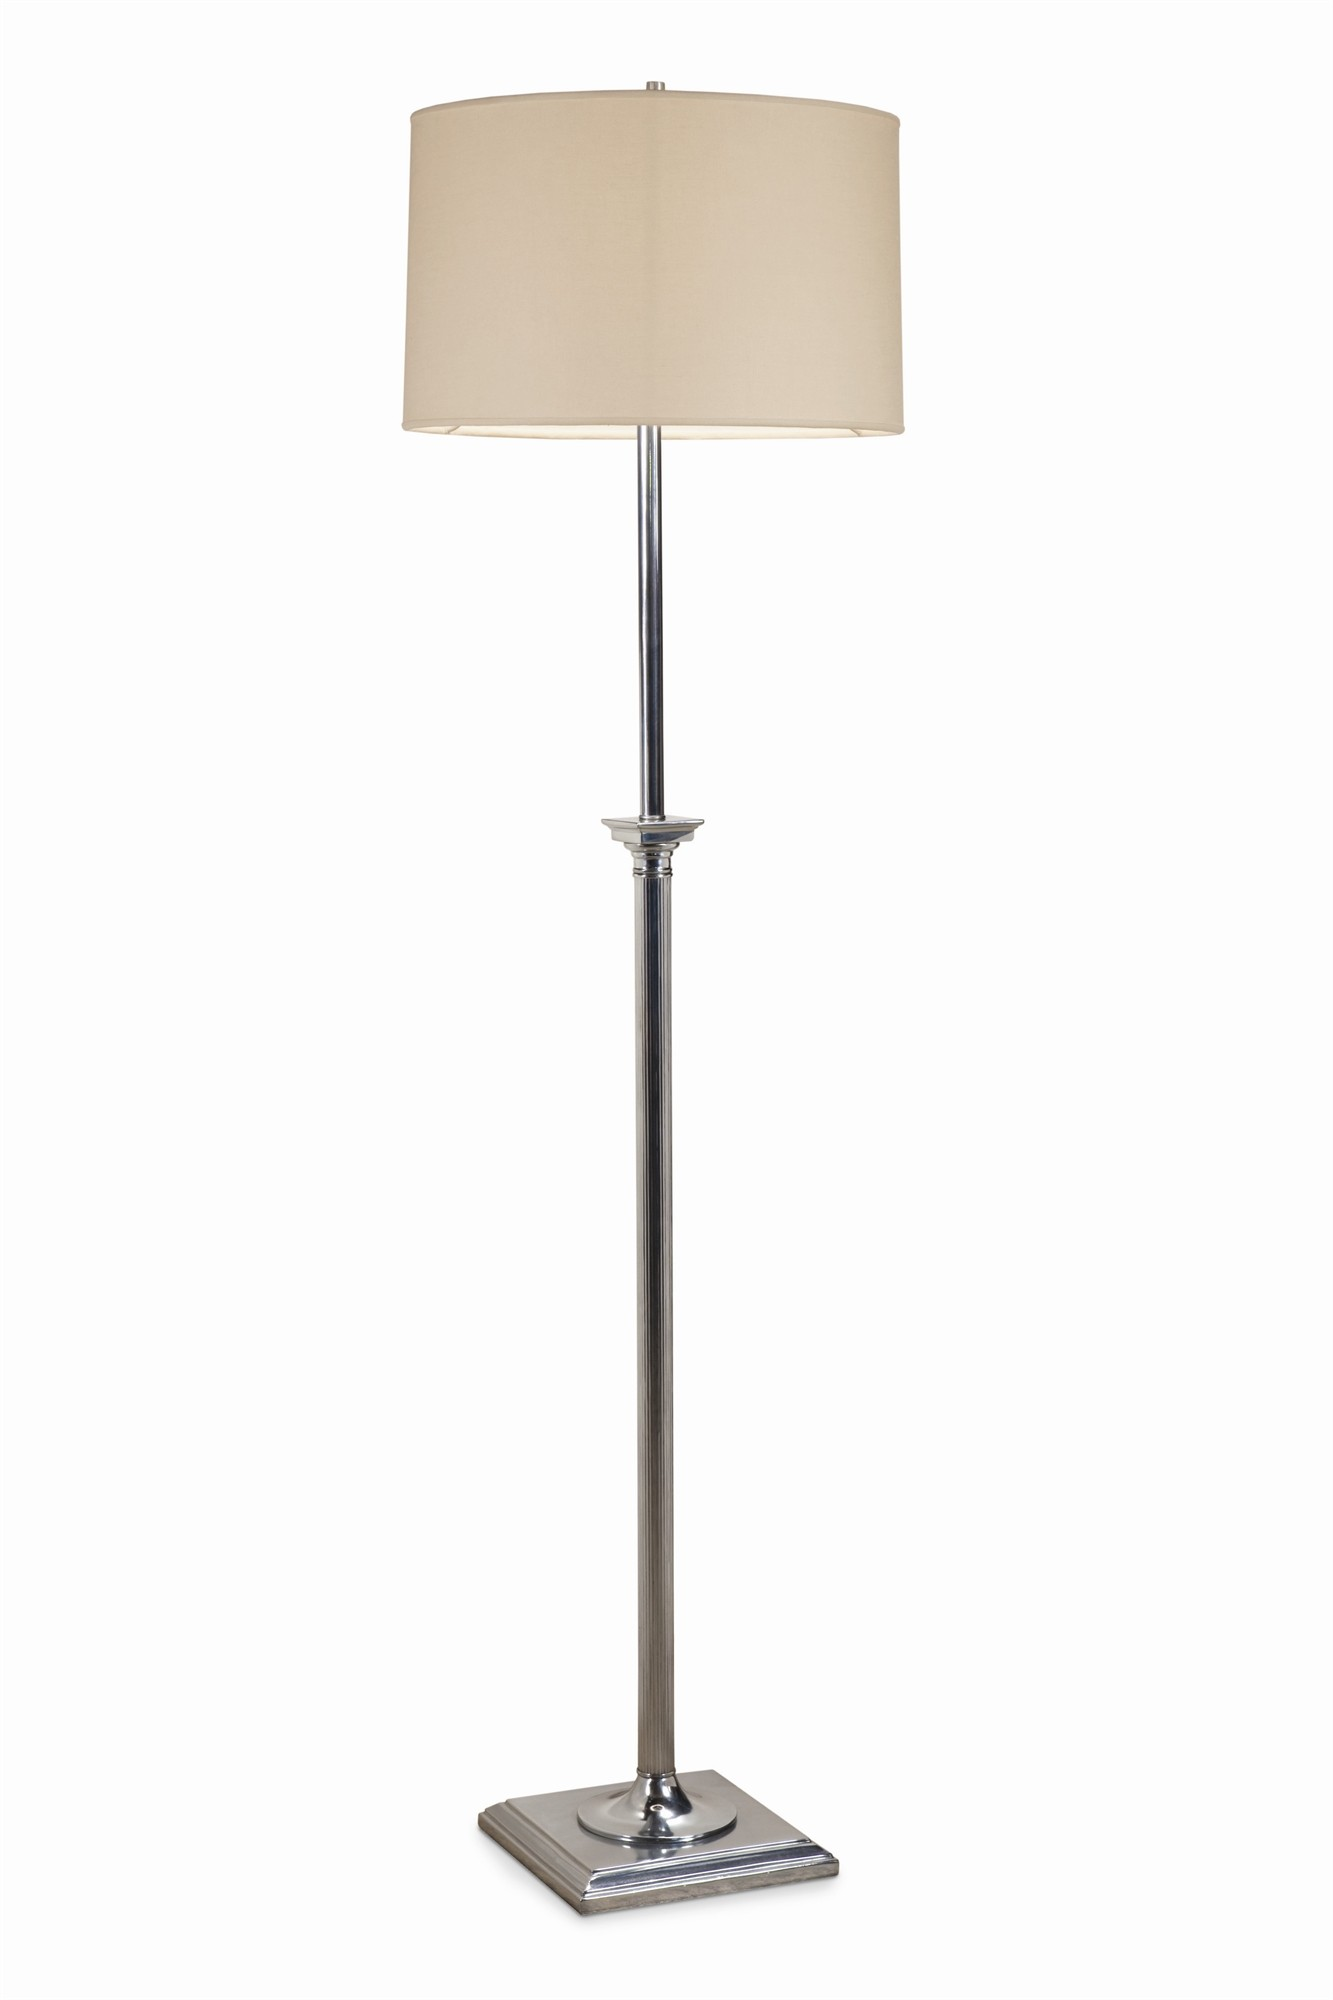 Regency Floor Lamp - Antique Zinc